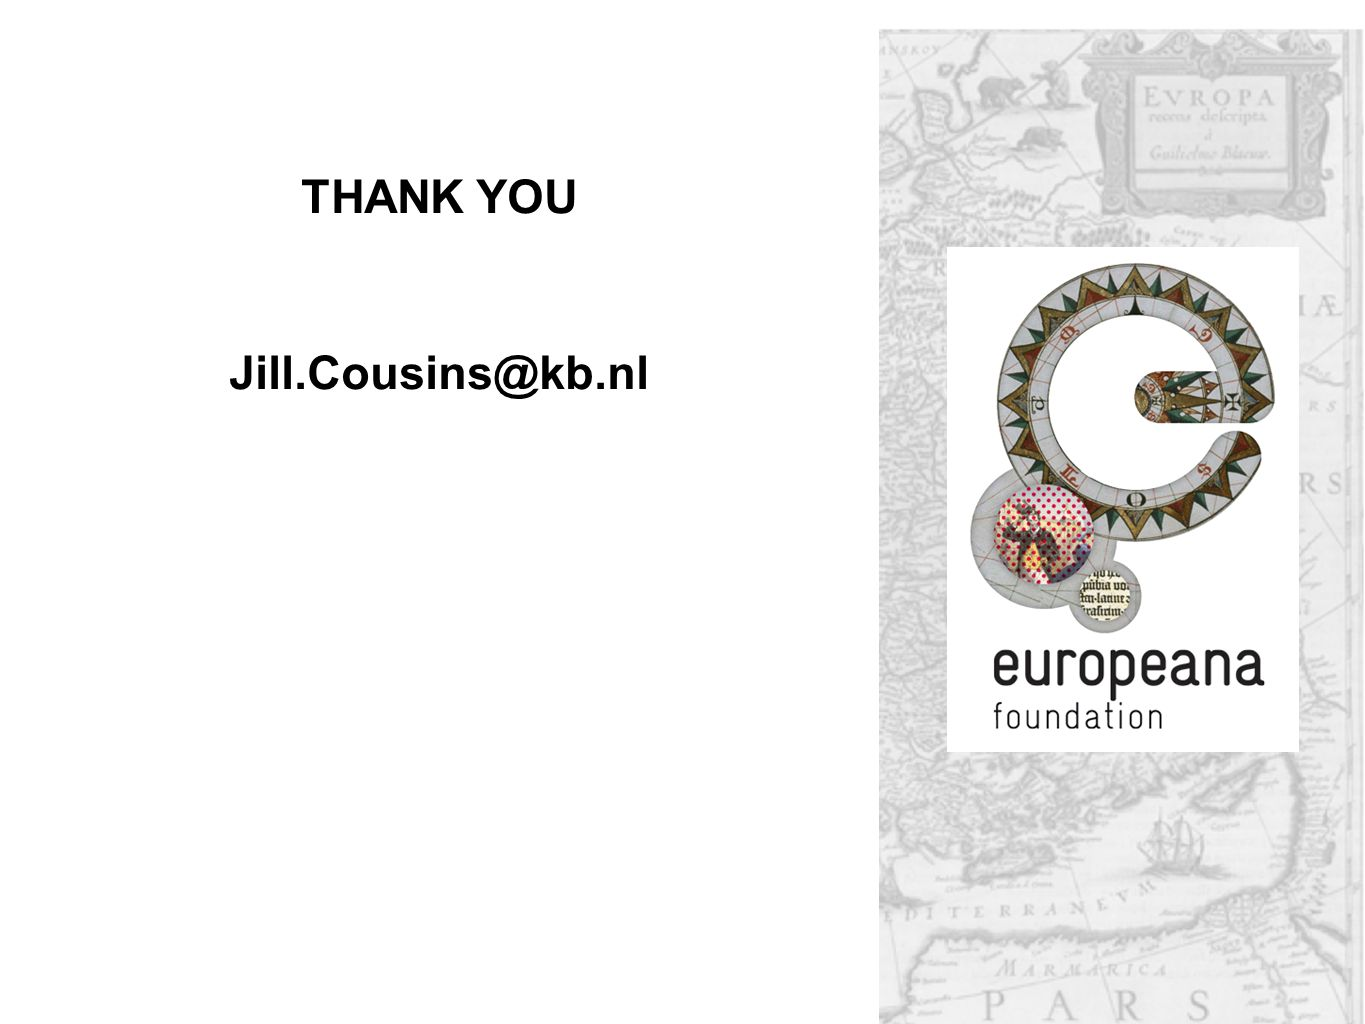 THANK YOU Jill.Cousins@kb.nl